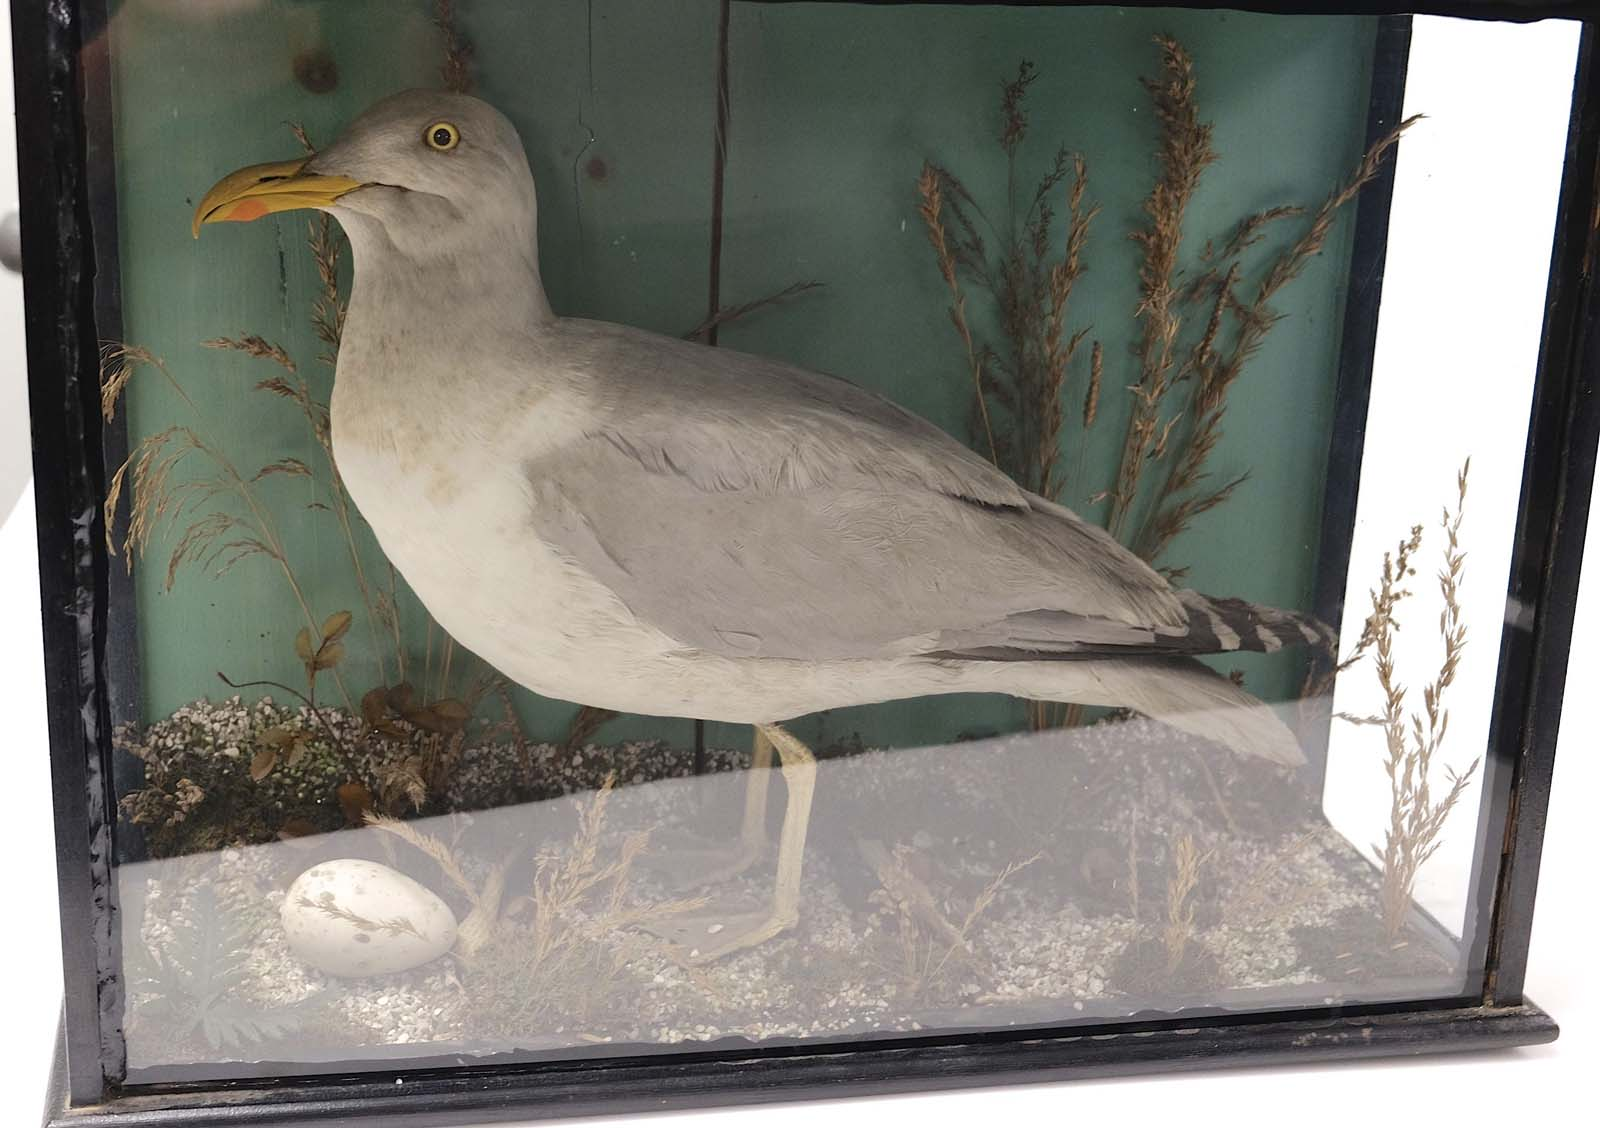 a photo of a seagull in a case